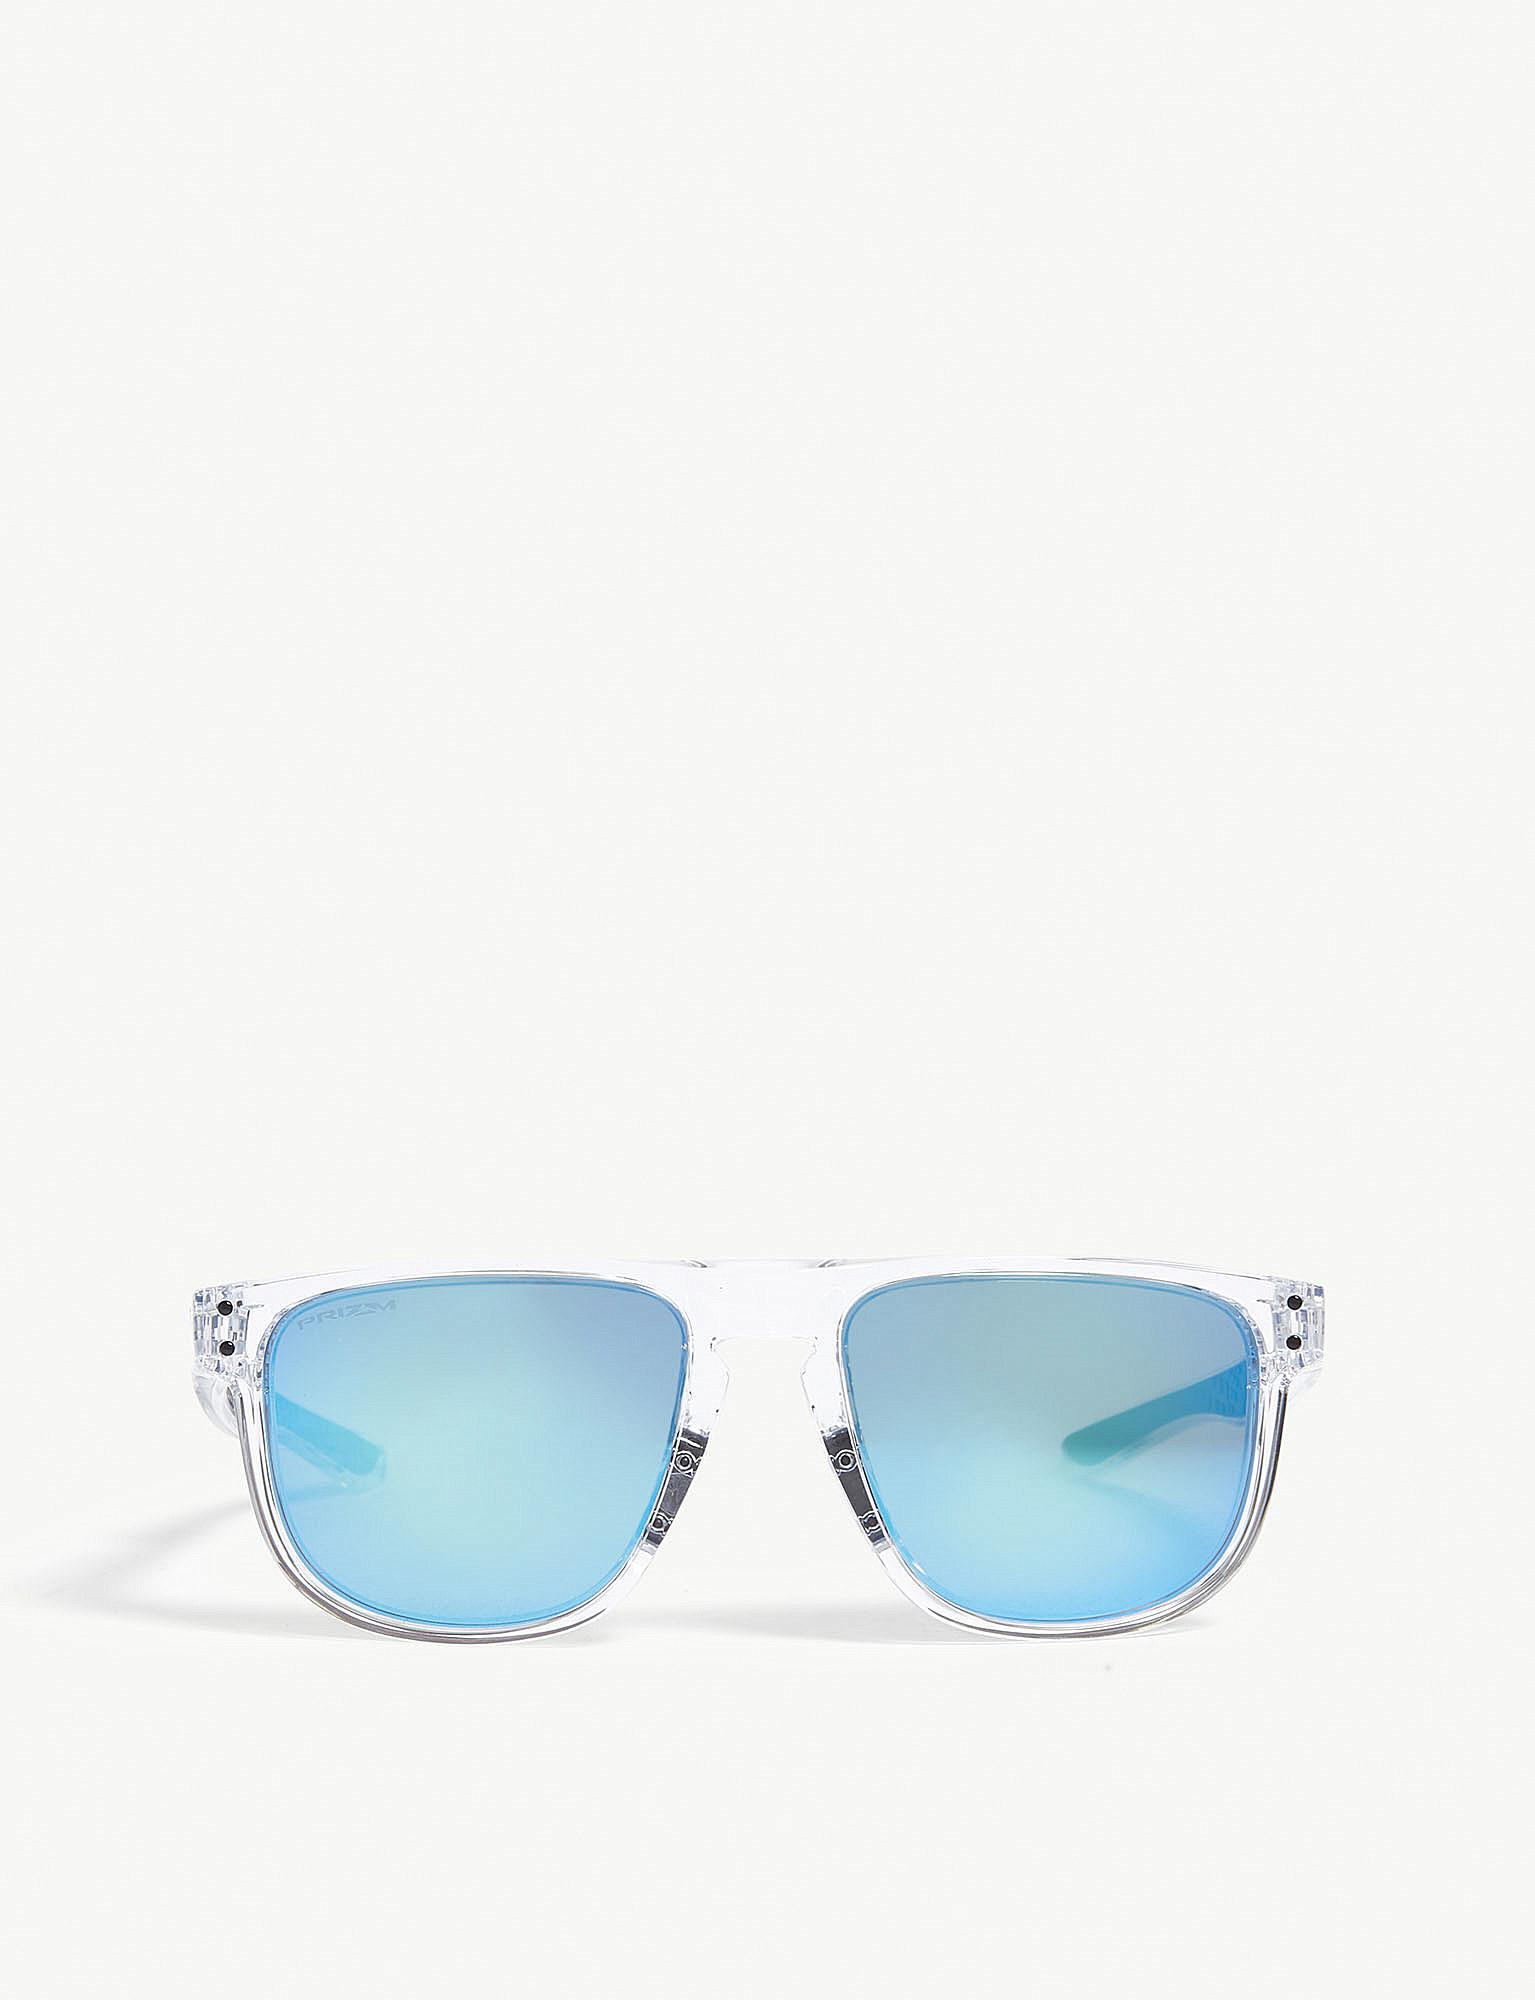 2cb9ab6aee1 Lyst - Oakley Holbrook Clear Square Sunglasses in Blue for Men